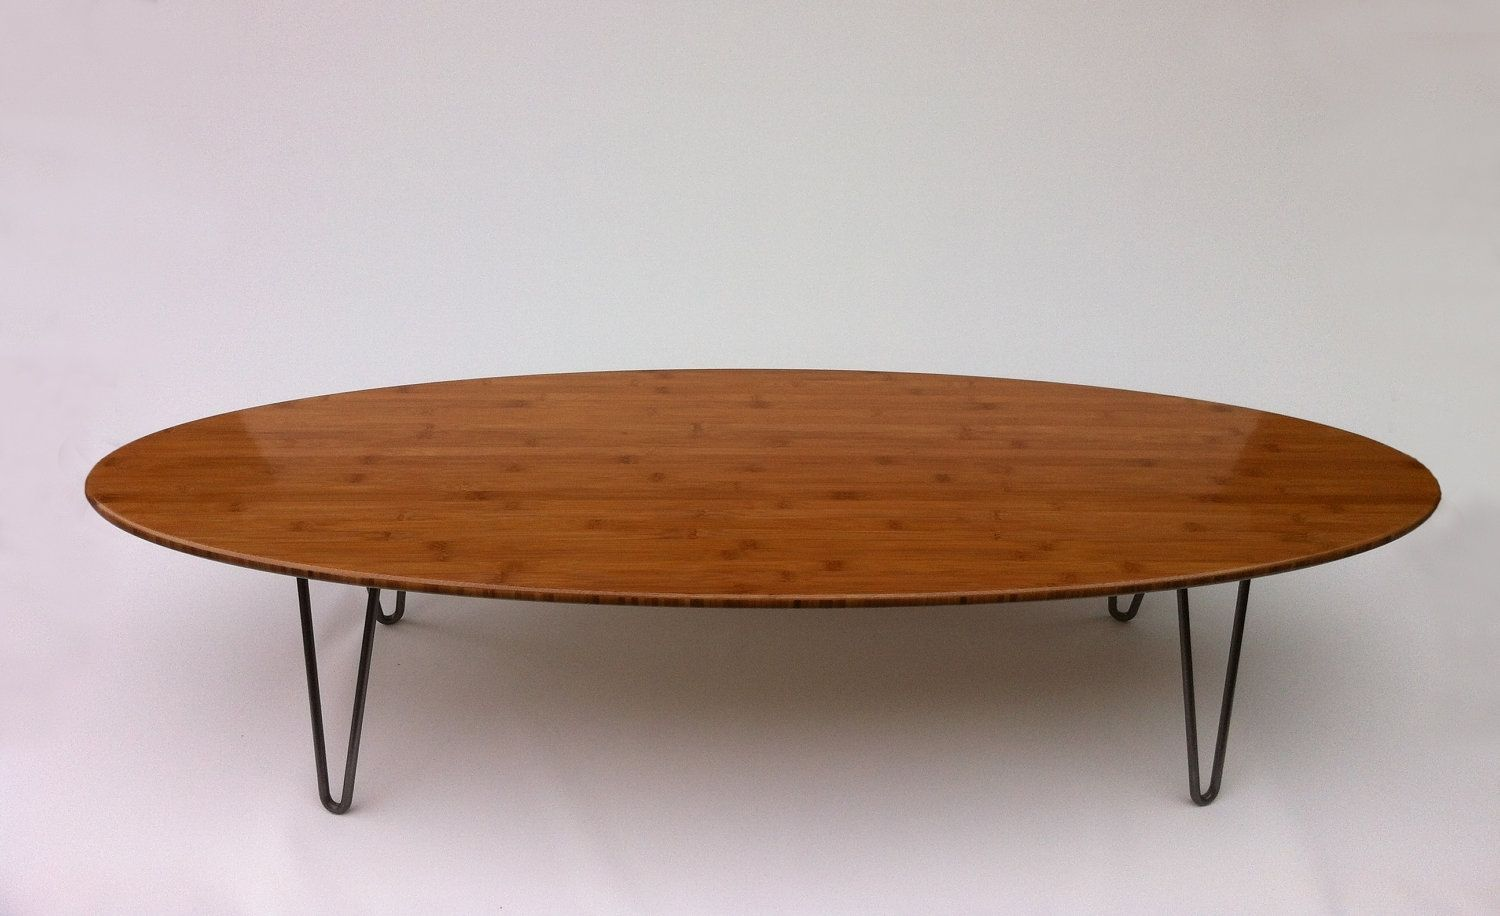 Buy a custom 66 surf board elliptical mid century modern coffee table hairpin legs in Legs for a coffee table